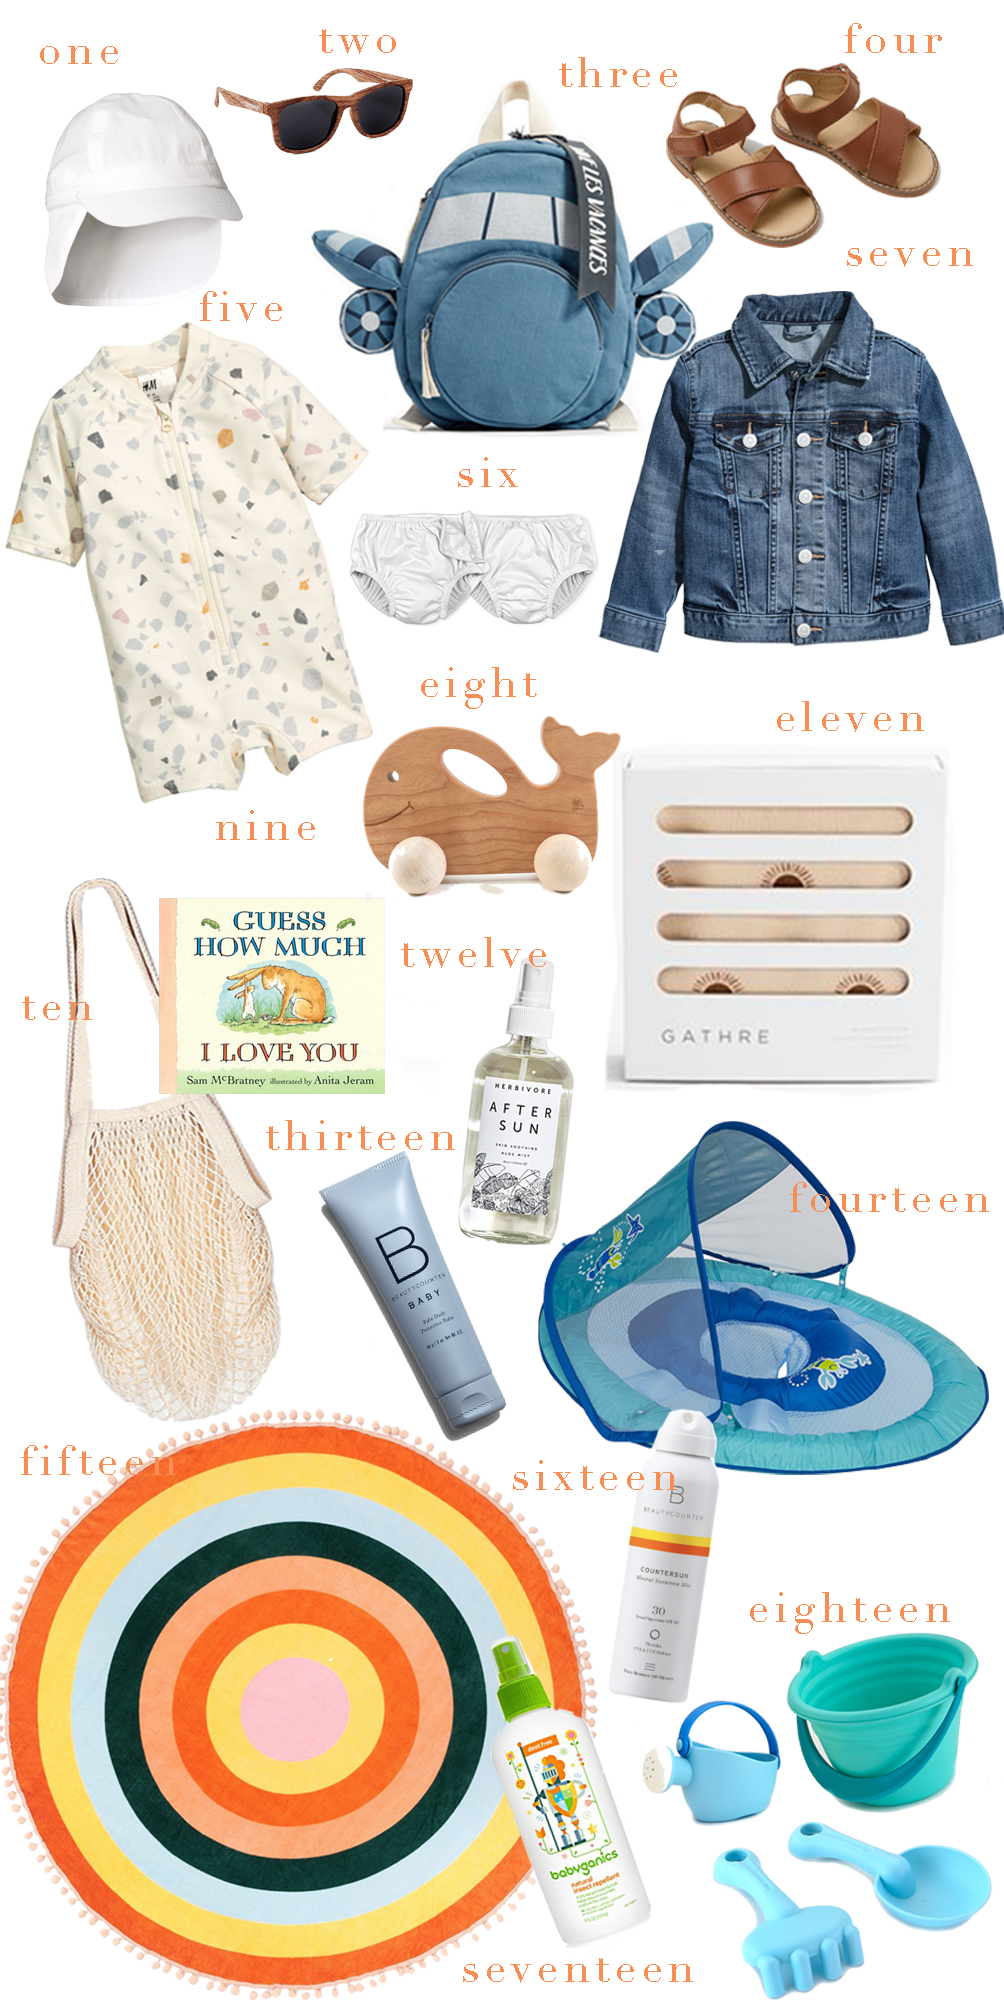 sharing our parenting advice for summer toddler travel essentials to pack for beach or warm weather vacations